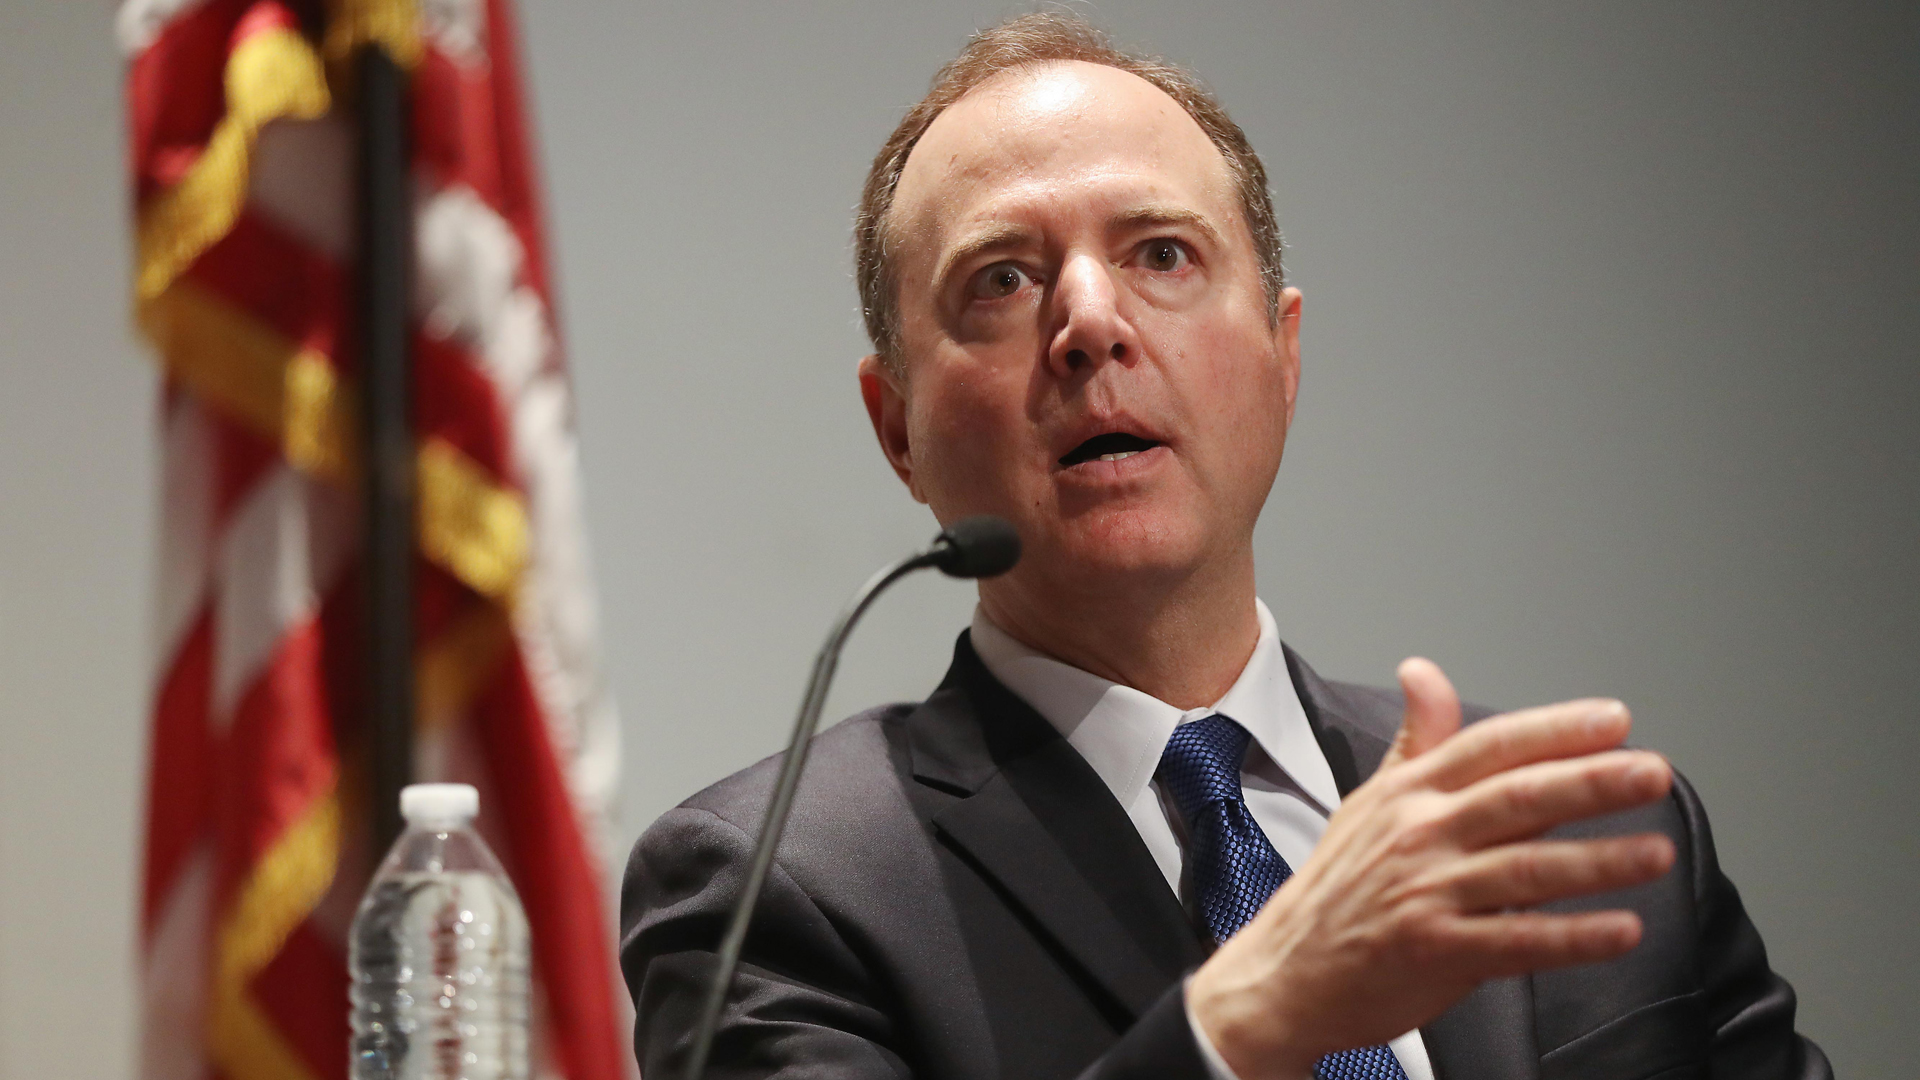 Chairman of the House Intelligence Committee Adam Schiff (D-CA) speaks at a discussion on 'constitutional clash' and the separation of powers on May 30, 2019 in Los Angeles. (Credit: Mario Tama/Getty Images)